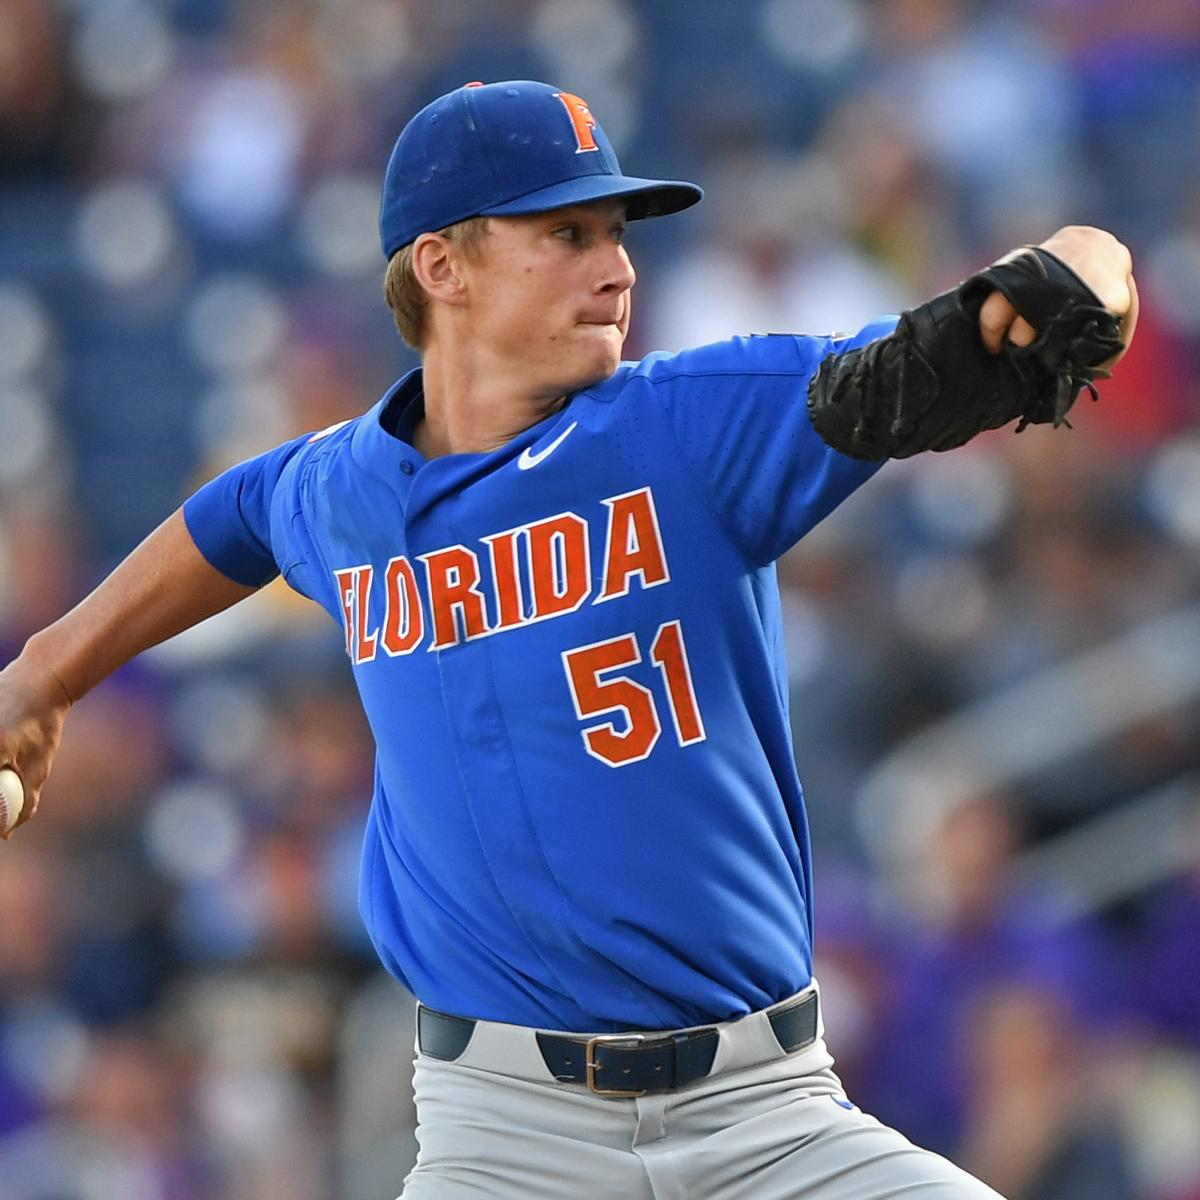 2018 MLB Draft Results: Biggest Winners and Losers of the Entire Draft